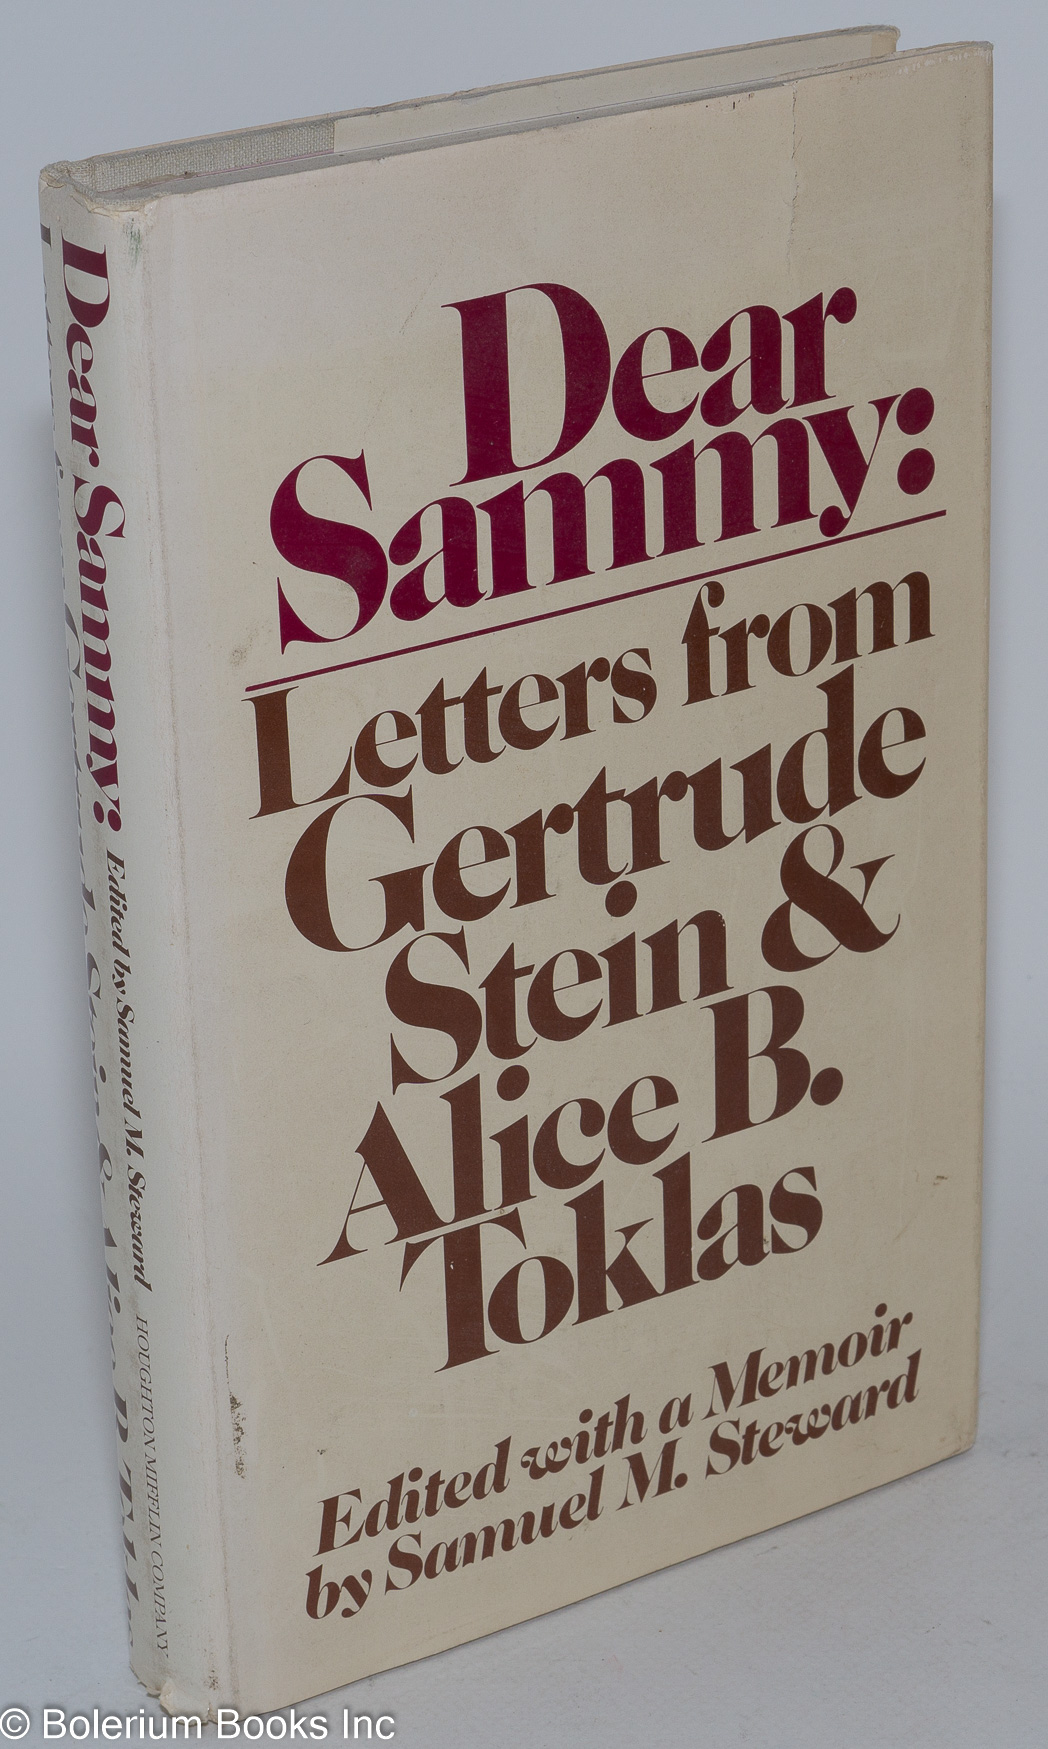 Dear Sammy; letters from Gertrude Stein and Alice B. Toklas, edited with a memoir by Samuel M. Steward, illustrated with photographs - Stein, Gertrude, Alice B. Toklas & Samuel M. Steward (aka Phil Andros)